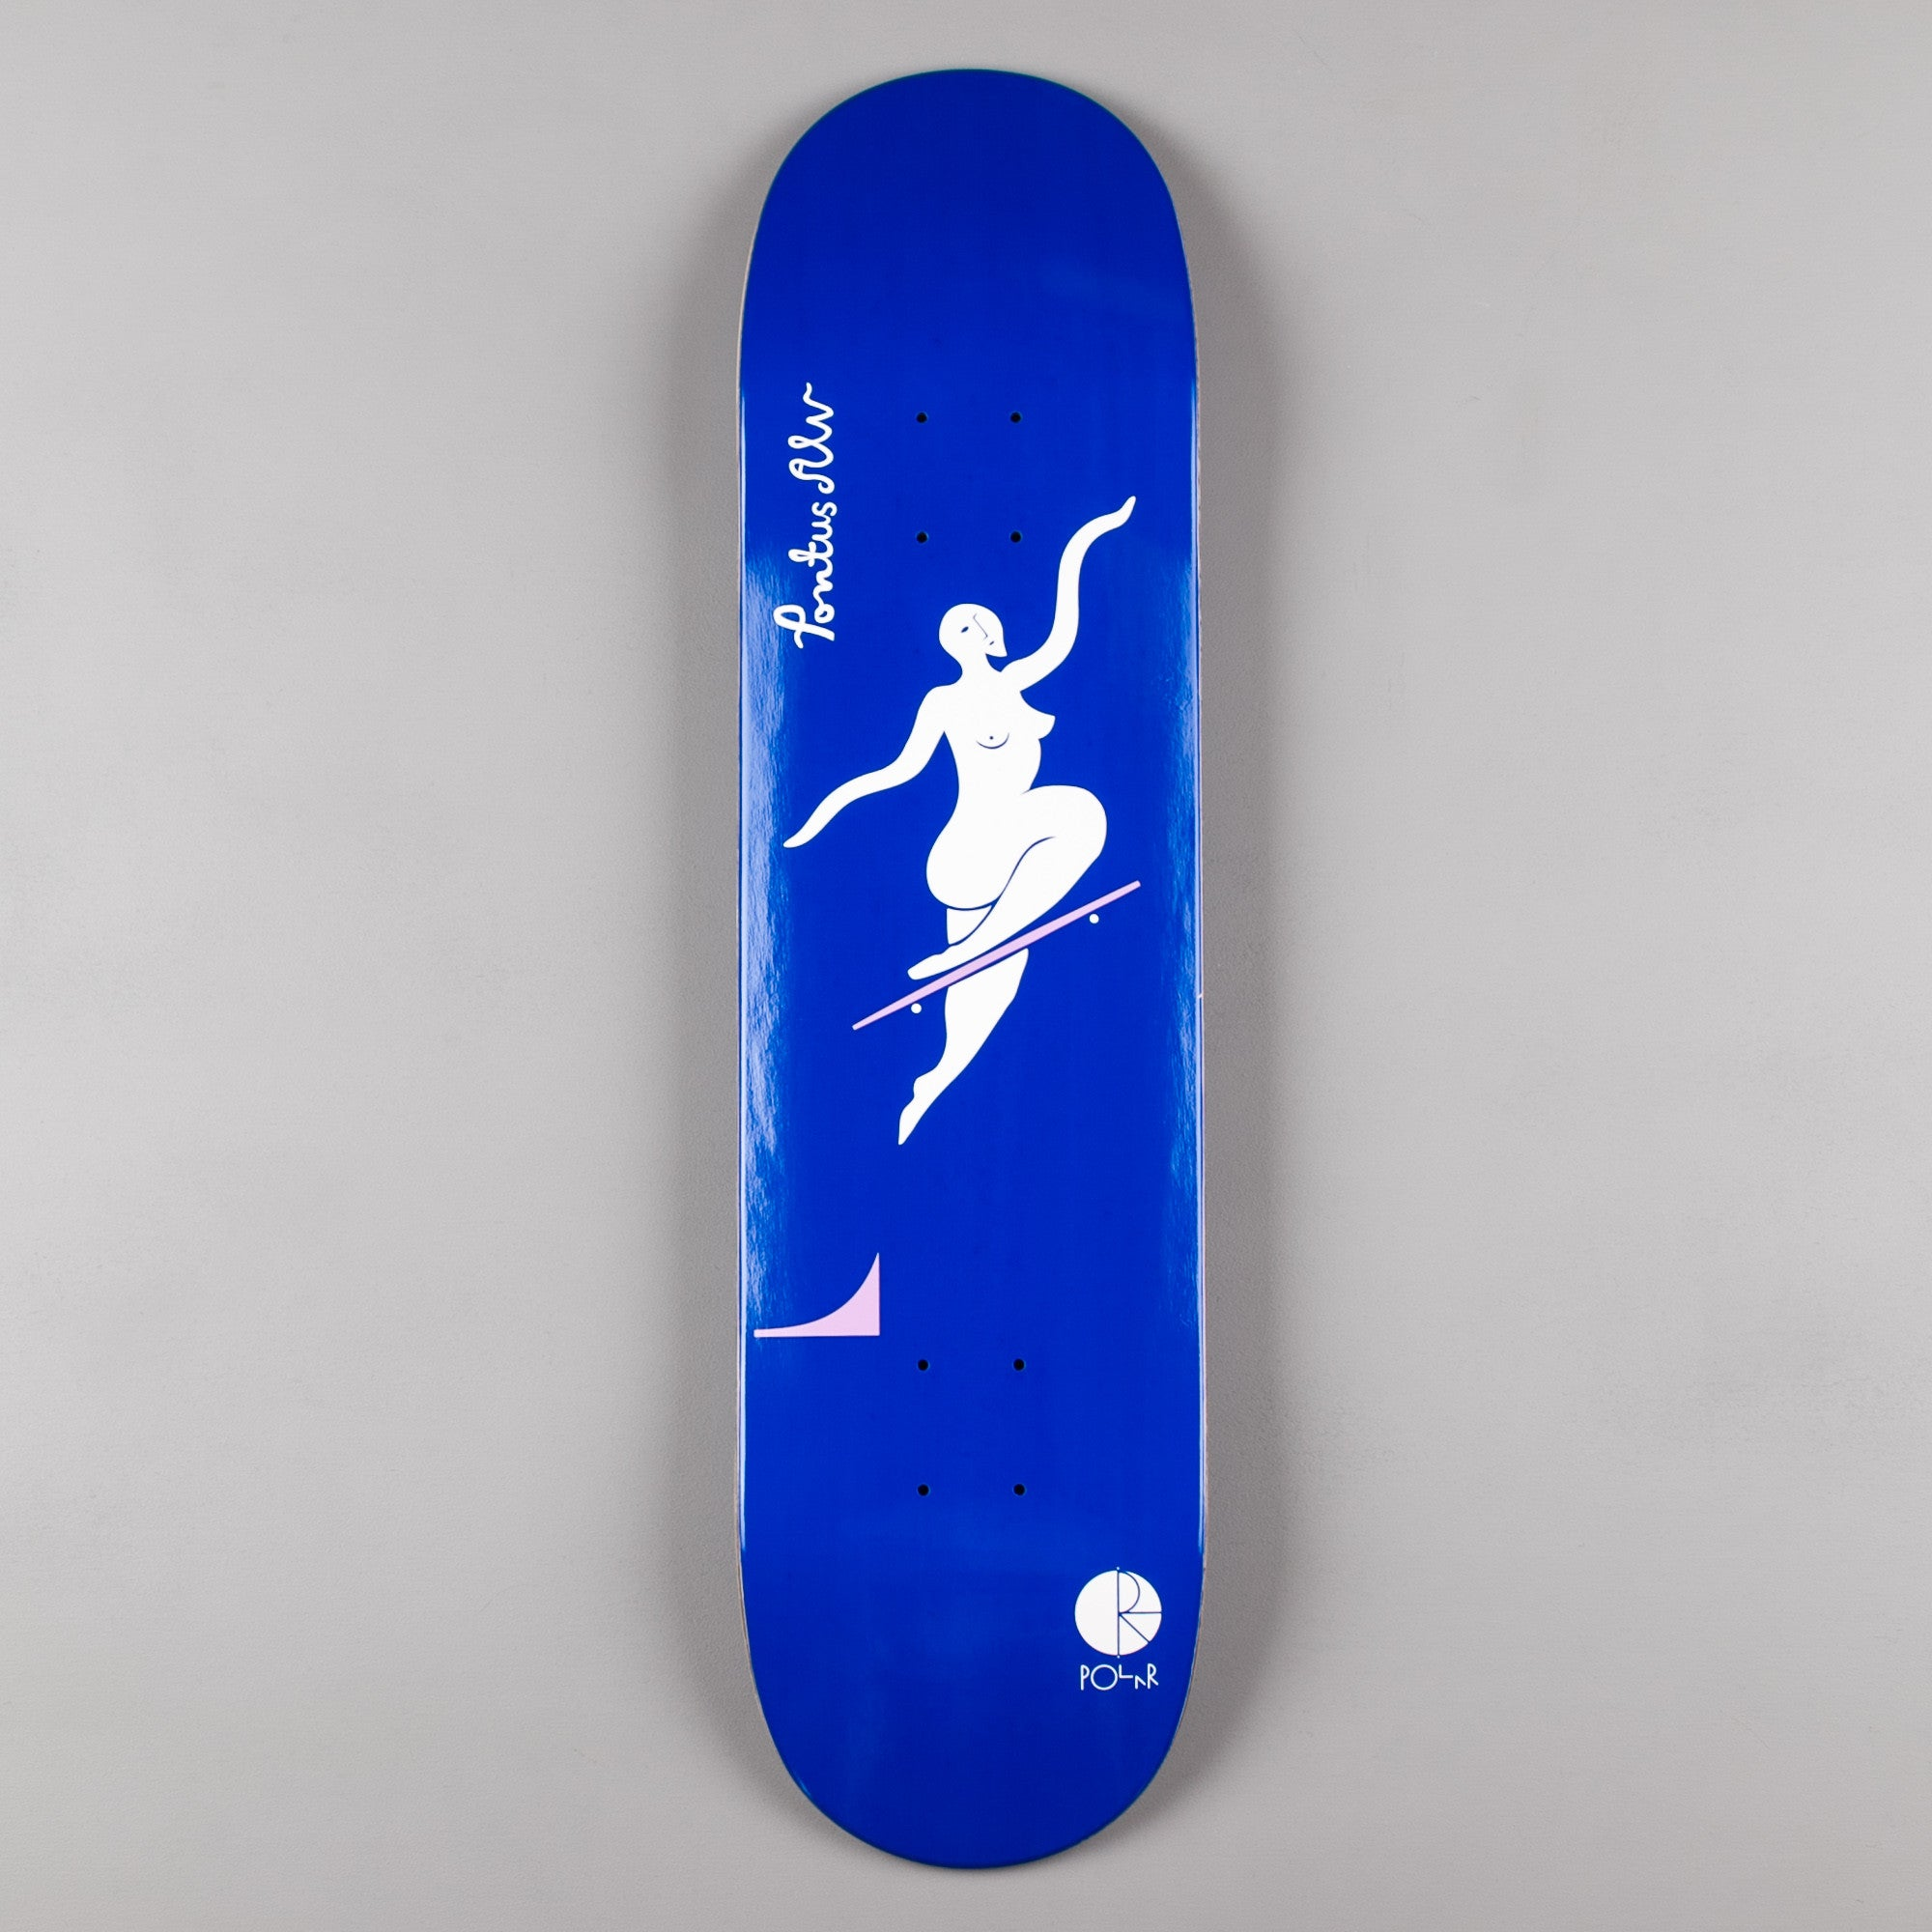 Polar Pontus Alv No Complies Forever Deck - Navy - 8""